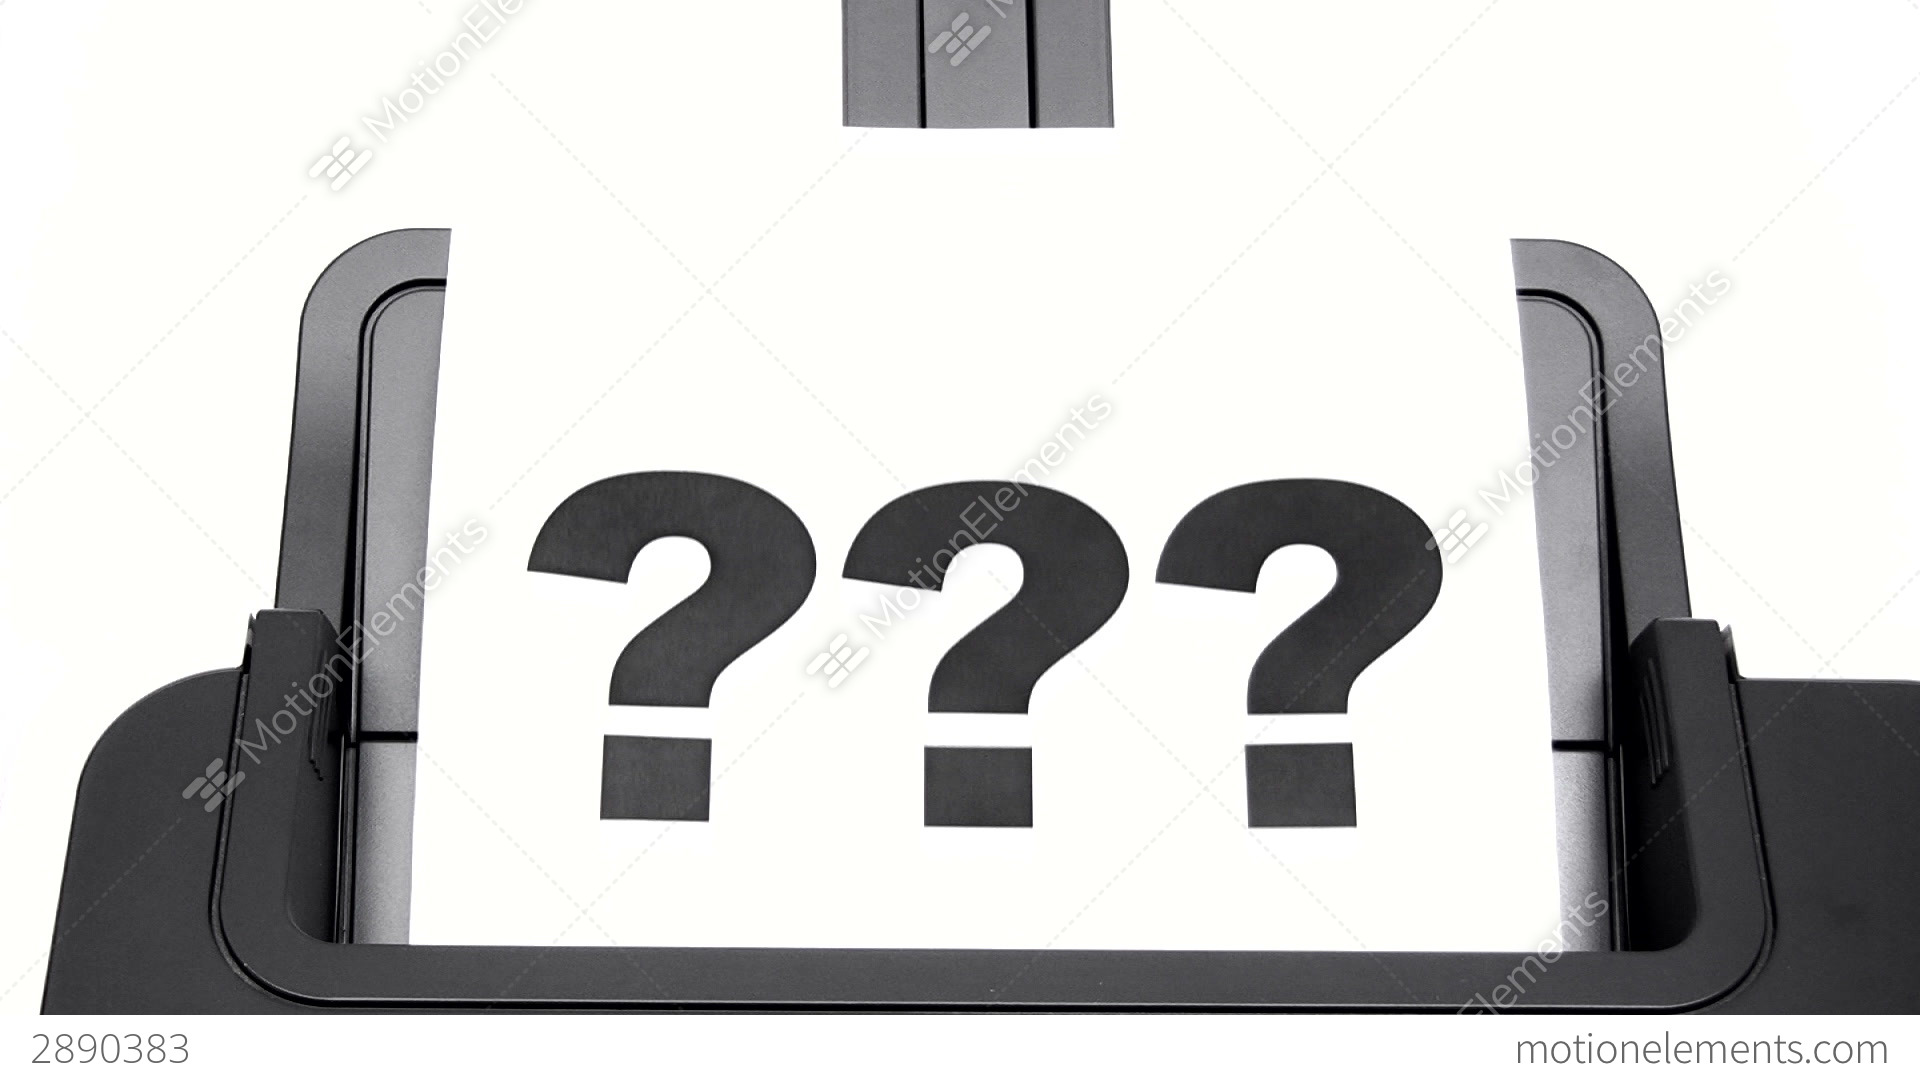 Pics photos clip art cartoon scientist with question mark stock - Printing Question Marks Stock Video Footage